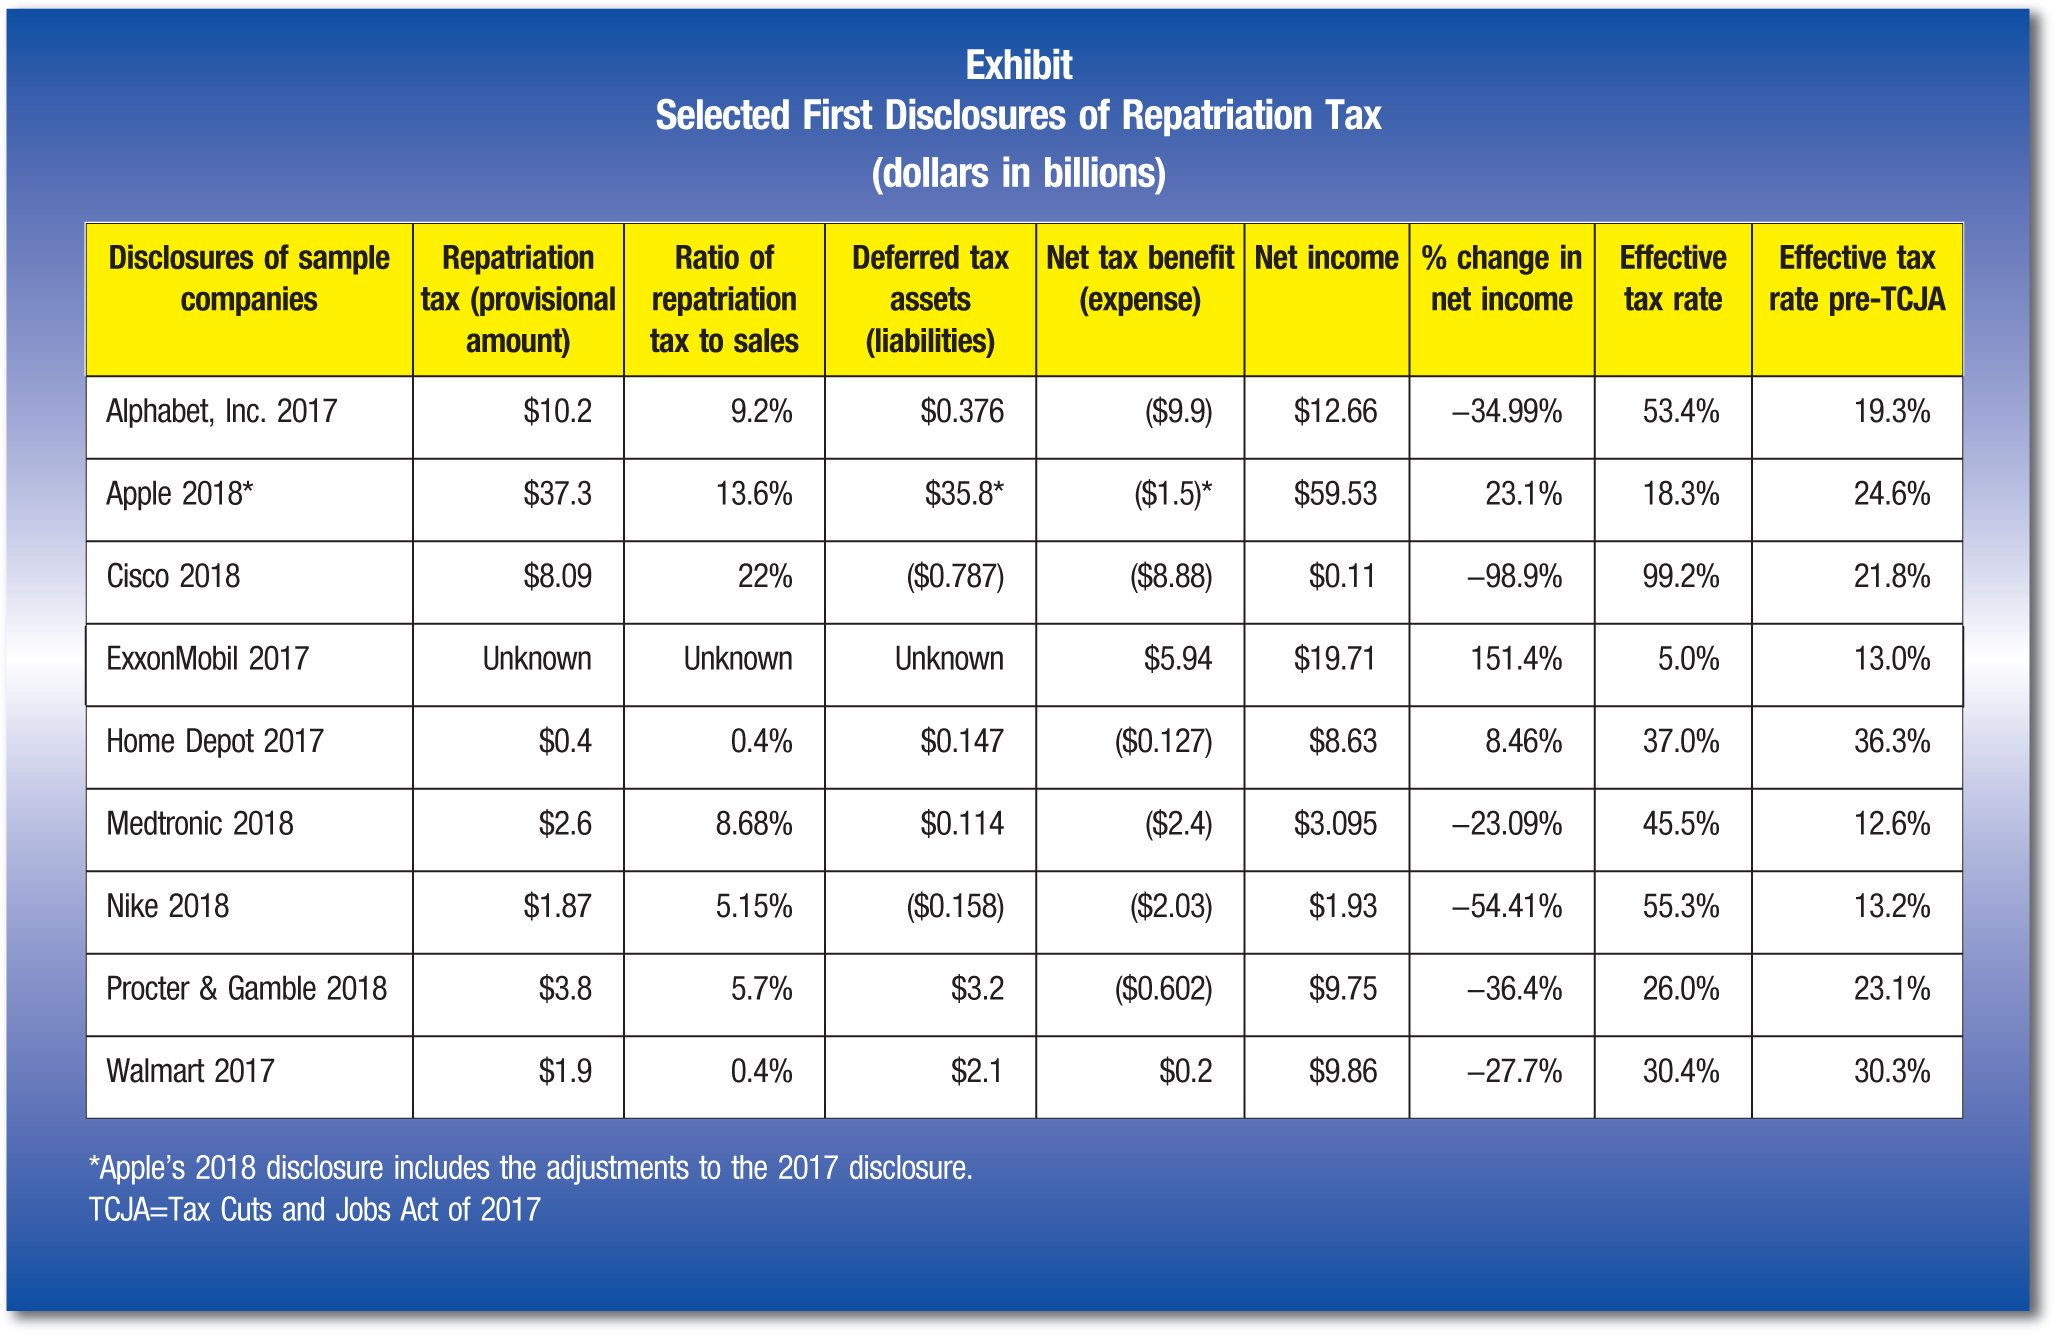 Disclosures of sample companies; Repatriation tax (provisional amount); Ratio of repatriation tax to sales; Deferred tax assets (liabilities); Net tax benefit (expense); Net income; % change in net income; Effective tax rate; Effective tax rate pre-TCJA Alphabet, Inc. 2017; $10.2; 9.2%; $0.376; ($9.9); $12.66; −34.99%; 53.4%; 19.3% Apple 2018*; $37.3; 13.6%; $35.8*; ($1.5)*; $59.53; 23.1%; 18.3%; 24.6% Cisco 2018; $8.09; 22%; ($0.787); ($8.88); $0.11; −98.9%; 99.2%; 21.8% ExxonMobil 2017; Unknown; Unknown; Unknown; $5.94; $19.71; 151.4%; 5.0%; 13.0% Home Depot 2017; $0.4; 0.4%; $0.147; ($0.127); $8.63; 8.46%; 37.0%; 36.3% Medtronic 2018; $2.6; 8.68%; $0.114; ($2.4); $3.095; −23.09%; 45.5%; 12.6% Nike 2018; $1.87; 5.15%; ($0.158); ($2.03); $1.93; −54.41%; 55.3%; 13.2% Procter & Gamble 2018; $3.8; 5.7%; $3.2; ($0.602); $9.75; −36.4%; 26.0%; 23.1% Walmart 2017; $1.9; 0.4%; $2.1; $0.2; $9.86; −27.7%; 30.4%; 30.3% *Apple's 2018 disclosure includes the adjustments to the 2017 disclosure.; TCJA=Tax Cuts and Jobs Act of 2017